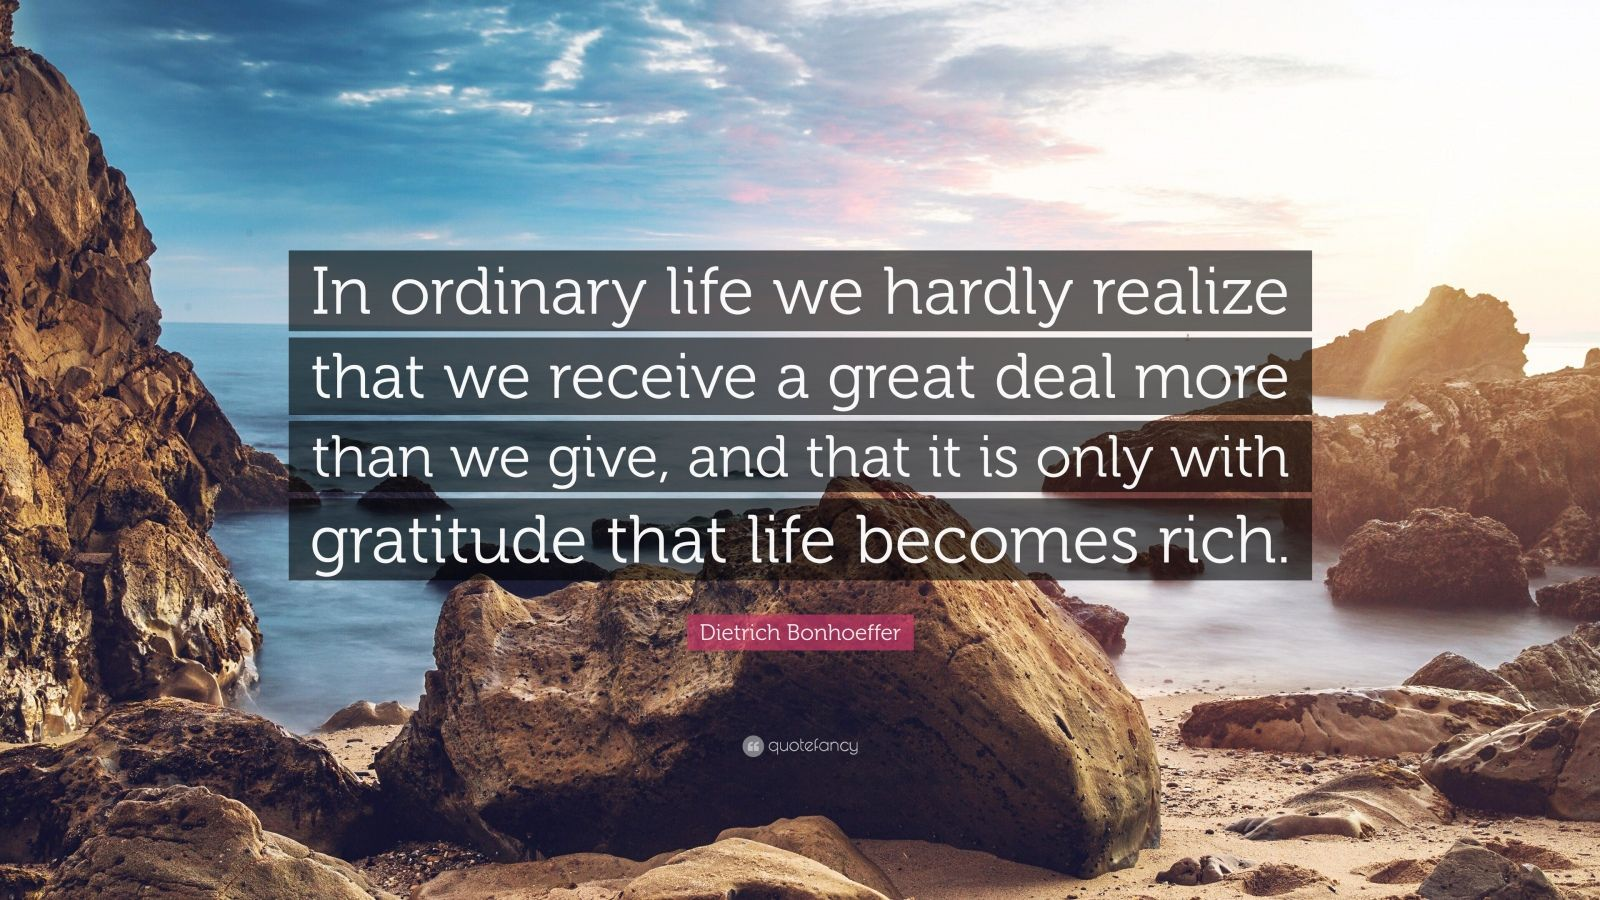 """Dietrich Bonhoeffer Quote: """"In ordinary life we hardly realize that we receive a great deal more than we give, and that it is only with gratitude that life becomes rich."""""""